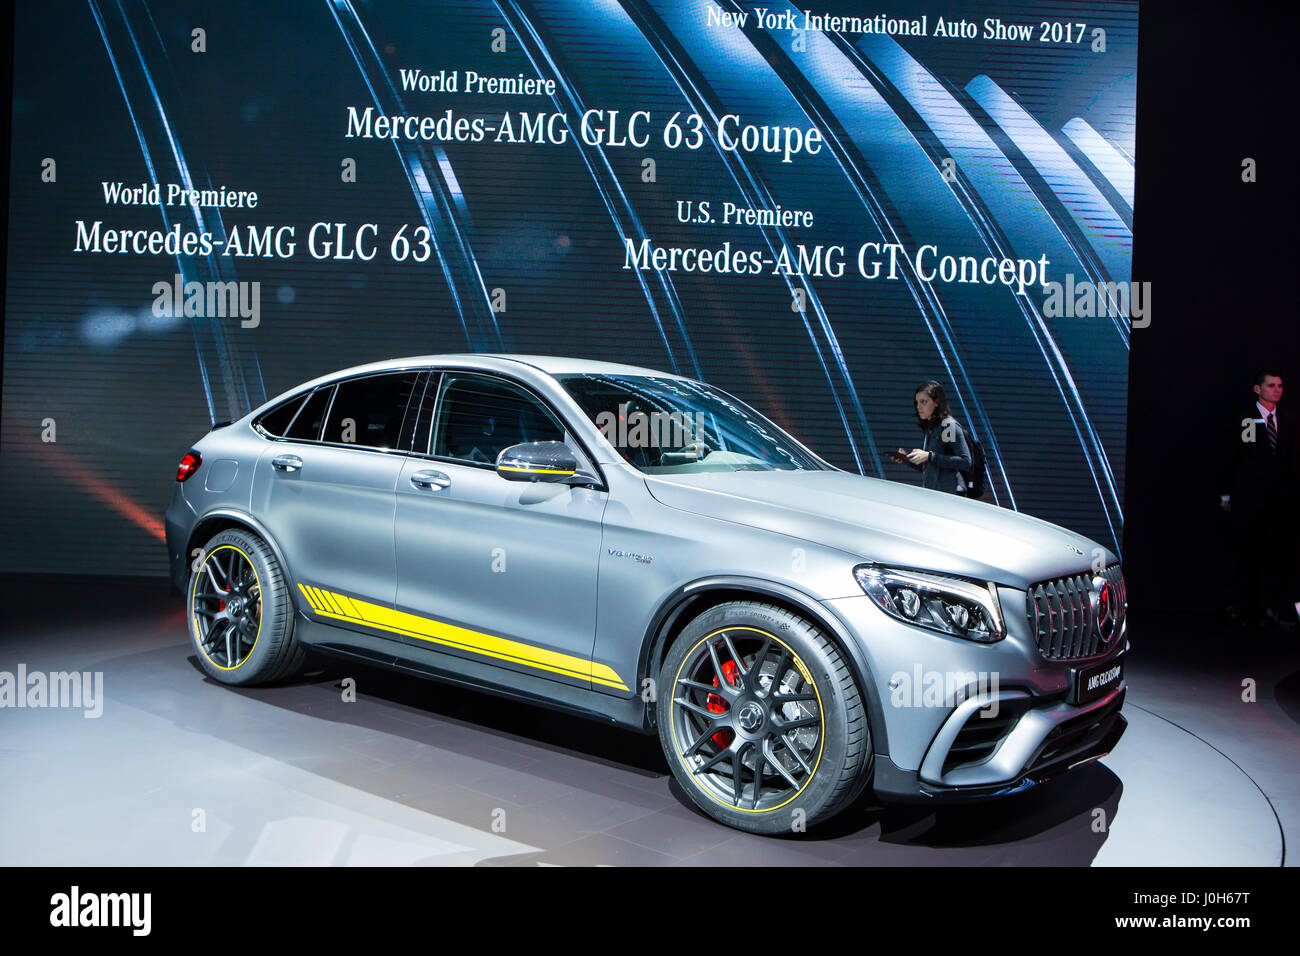 New York, USA. 12th Apr, 2017. Mercedes new GLC 63S Coupé, with a 3.98L, V8 engine, delivering 510hp into a - Stock Image